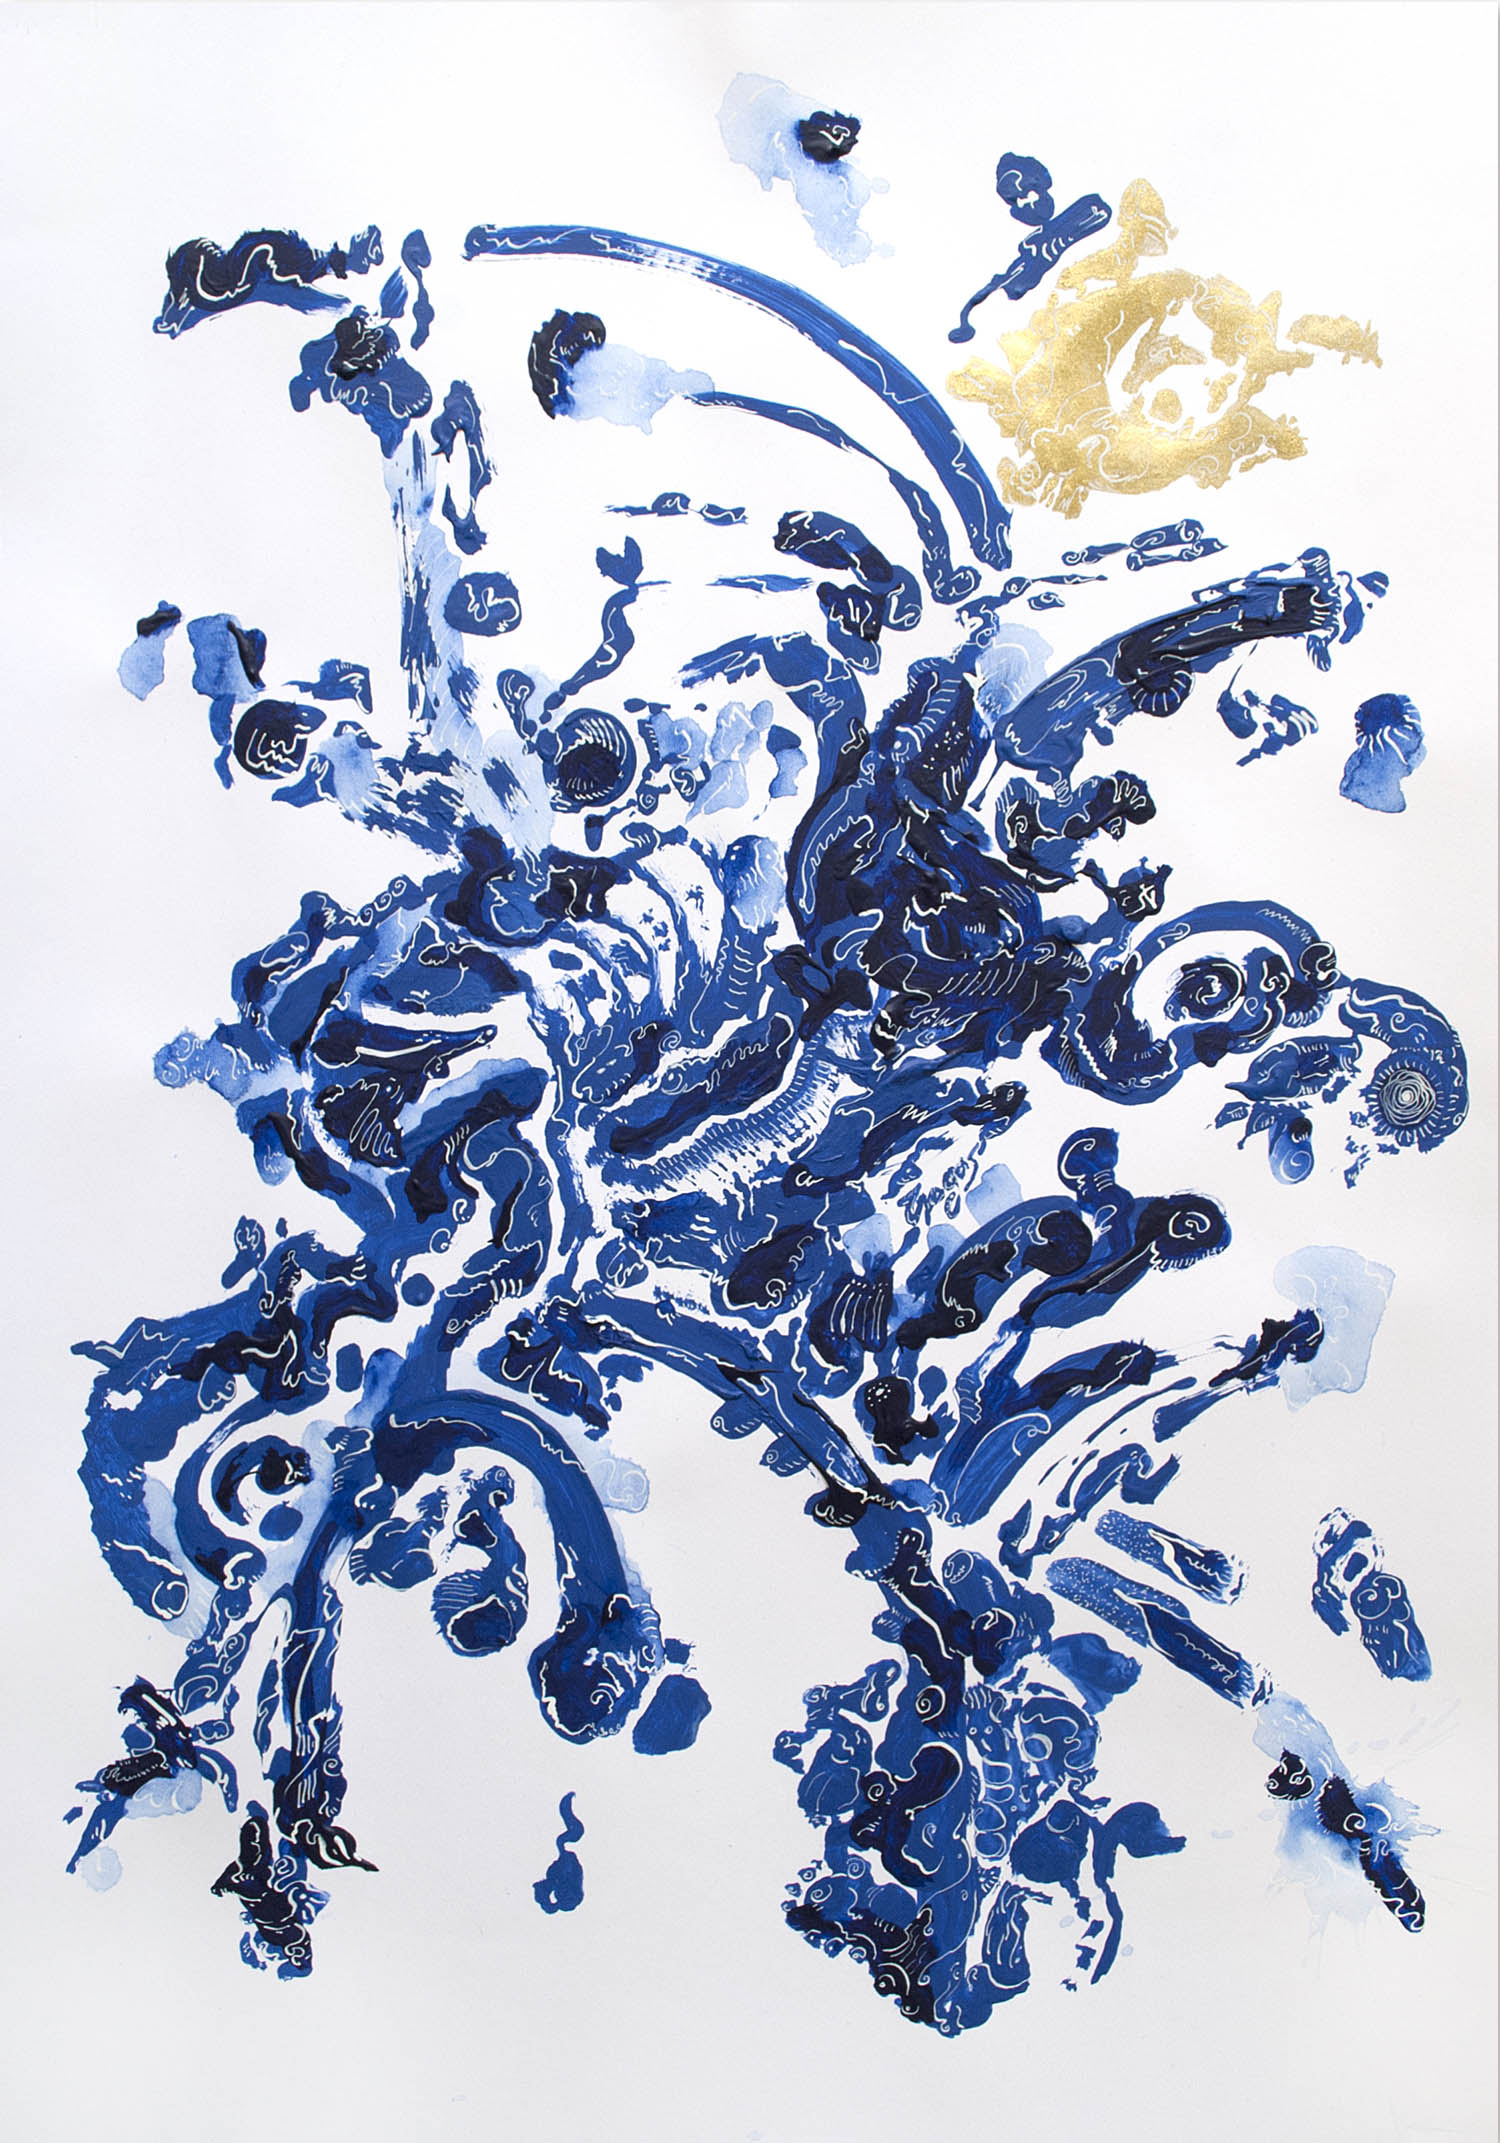 'Blue & Gold Abstract', An Abstract Acrylic & Ink Blue, Gold & White Artwork by Greek multidisciplinary artist Kostas Gogas.